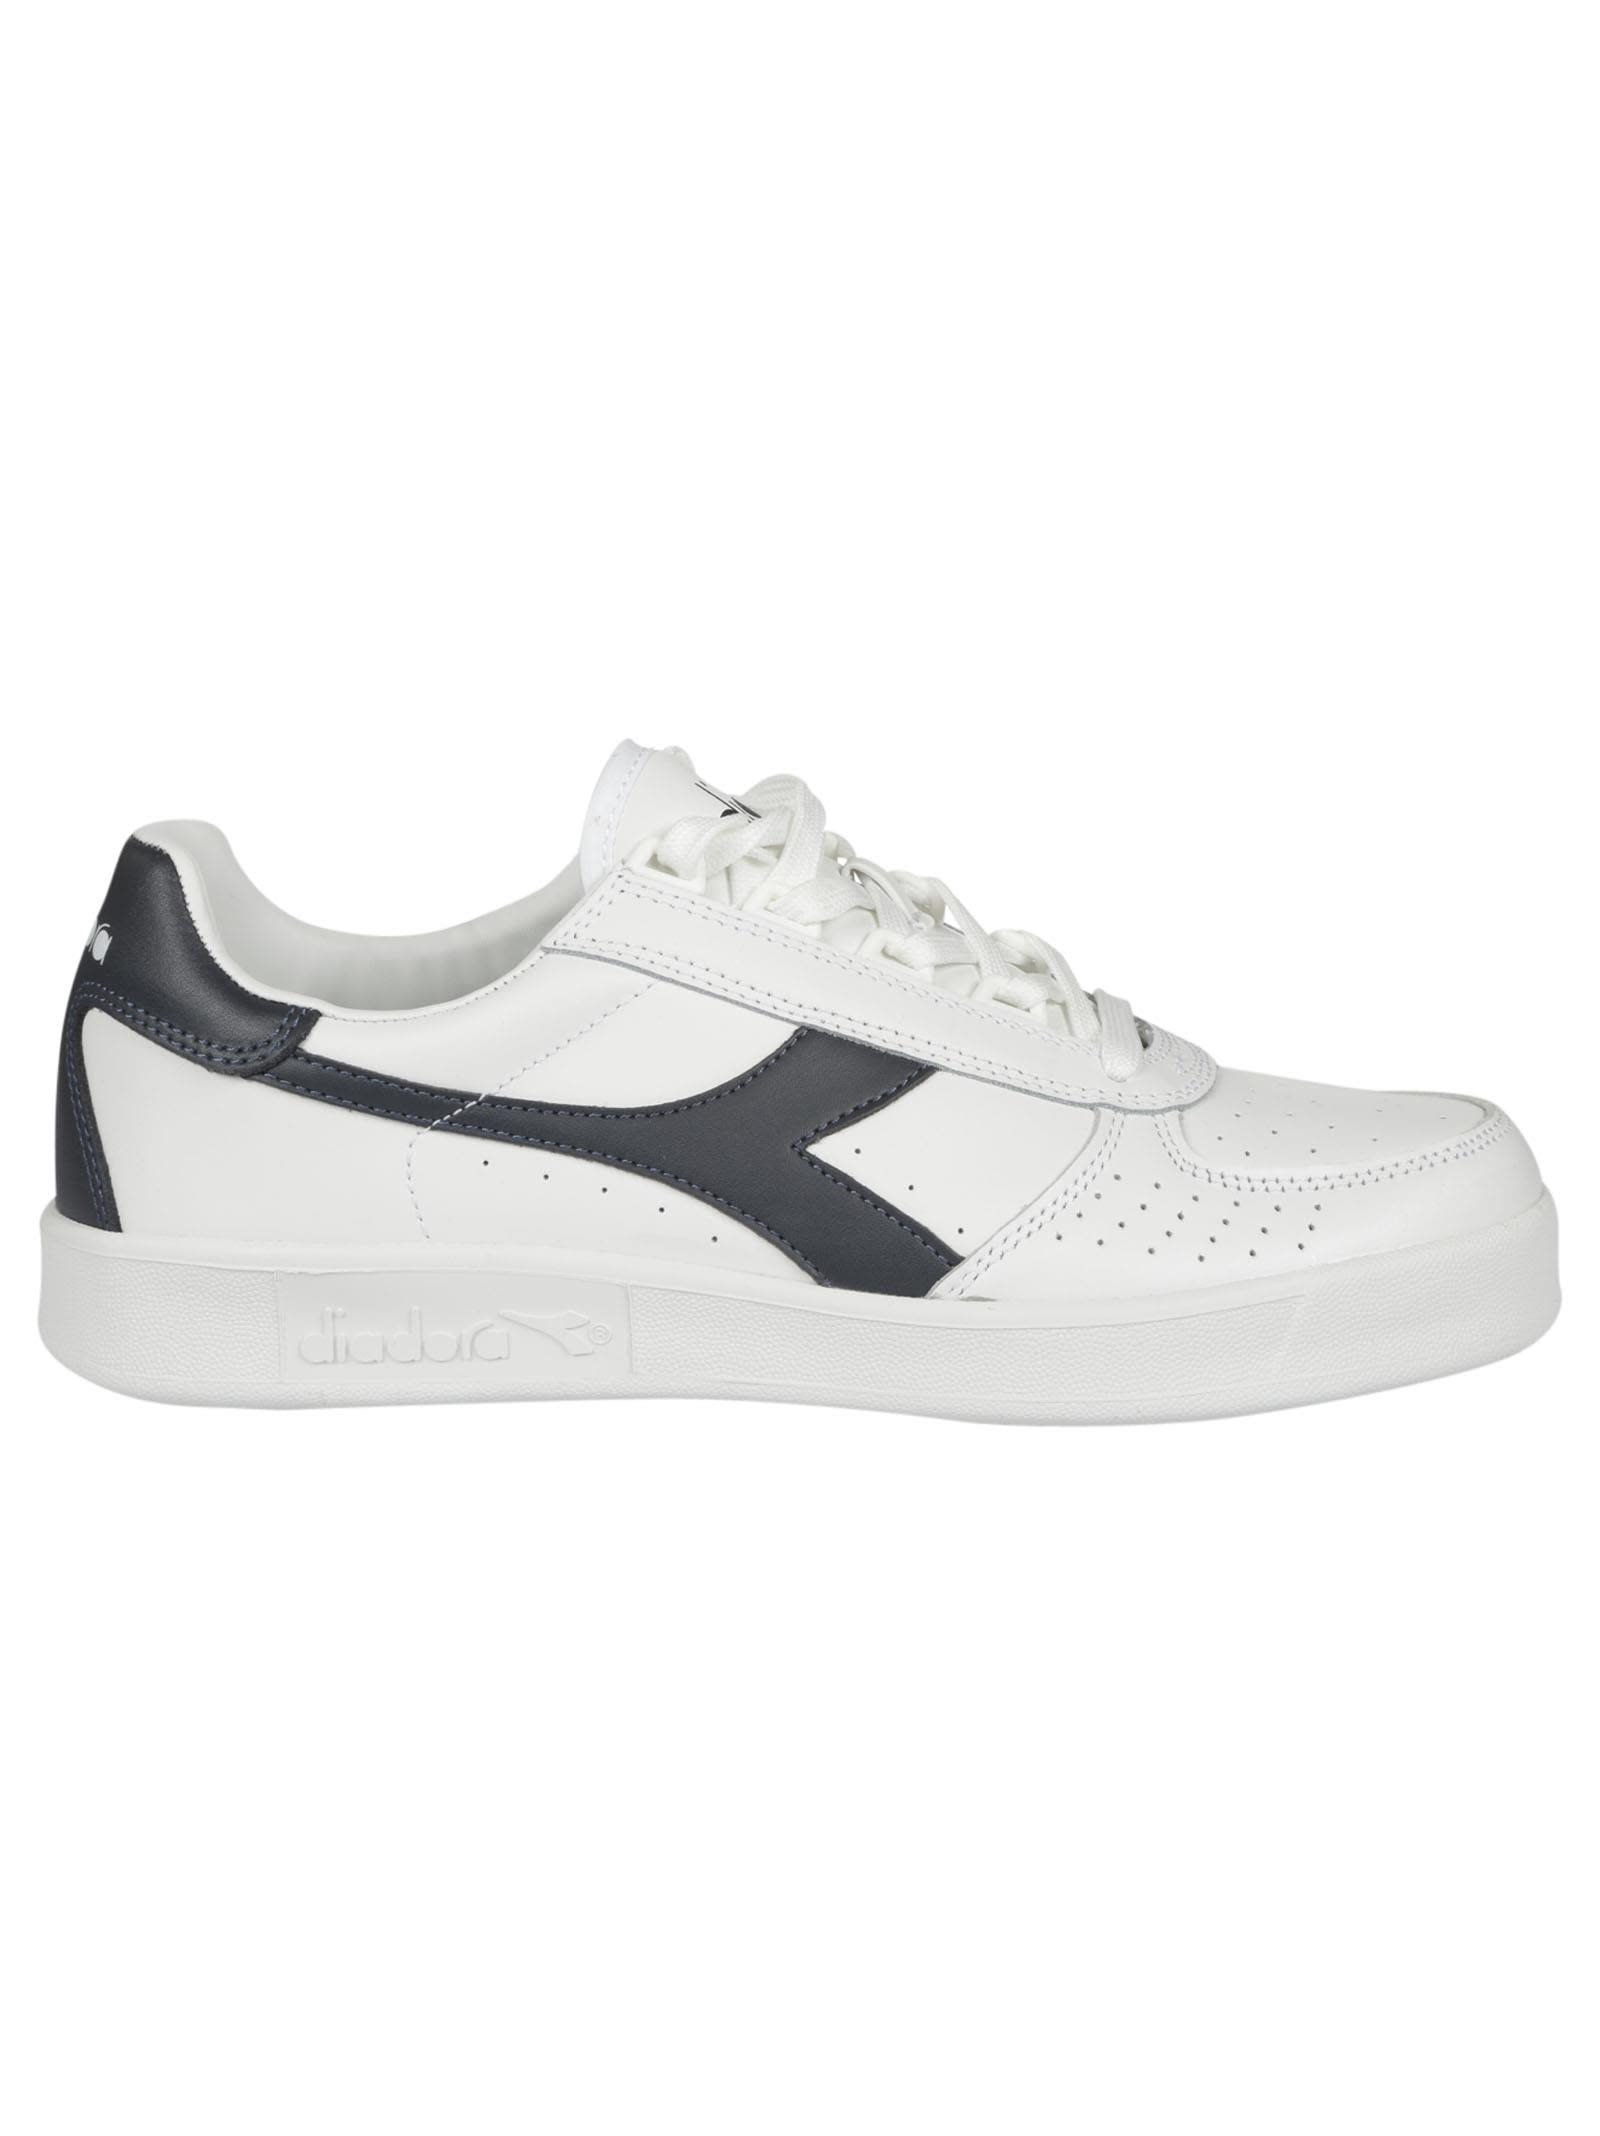 Diadora B. Elite Sneakers